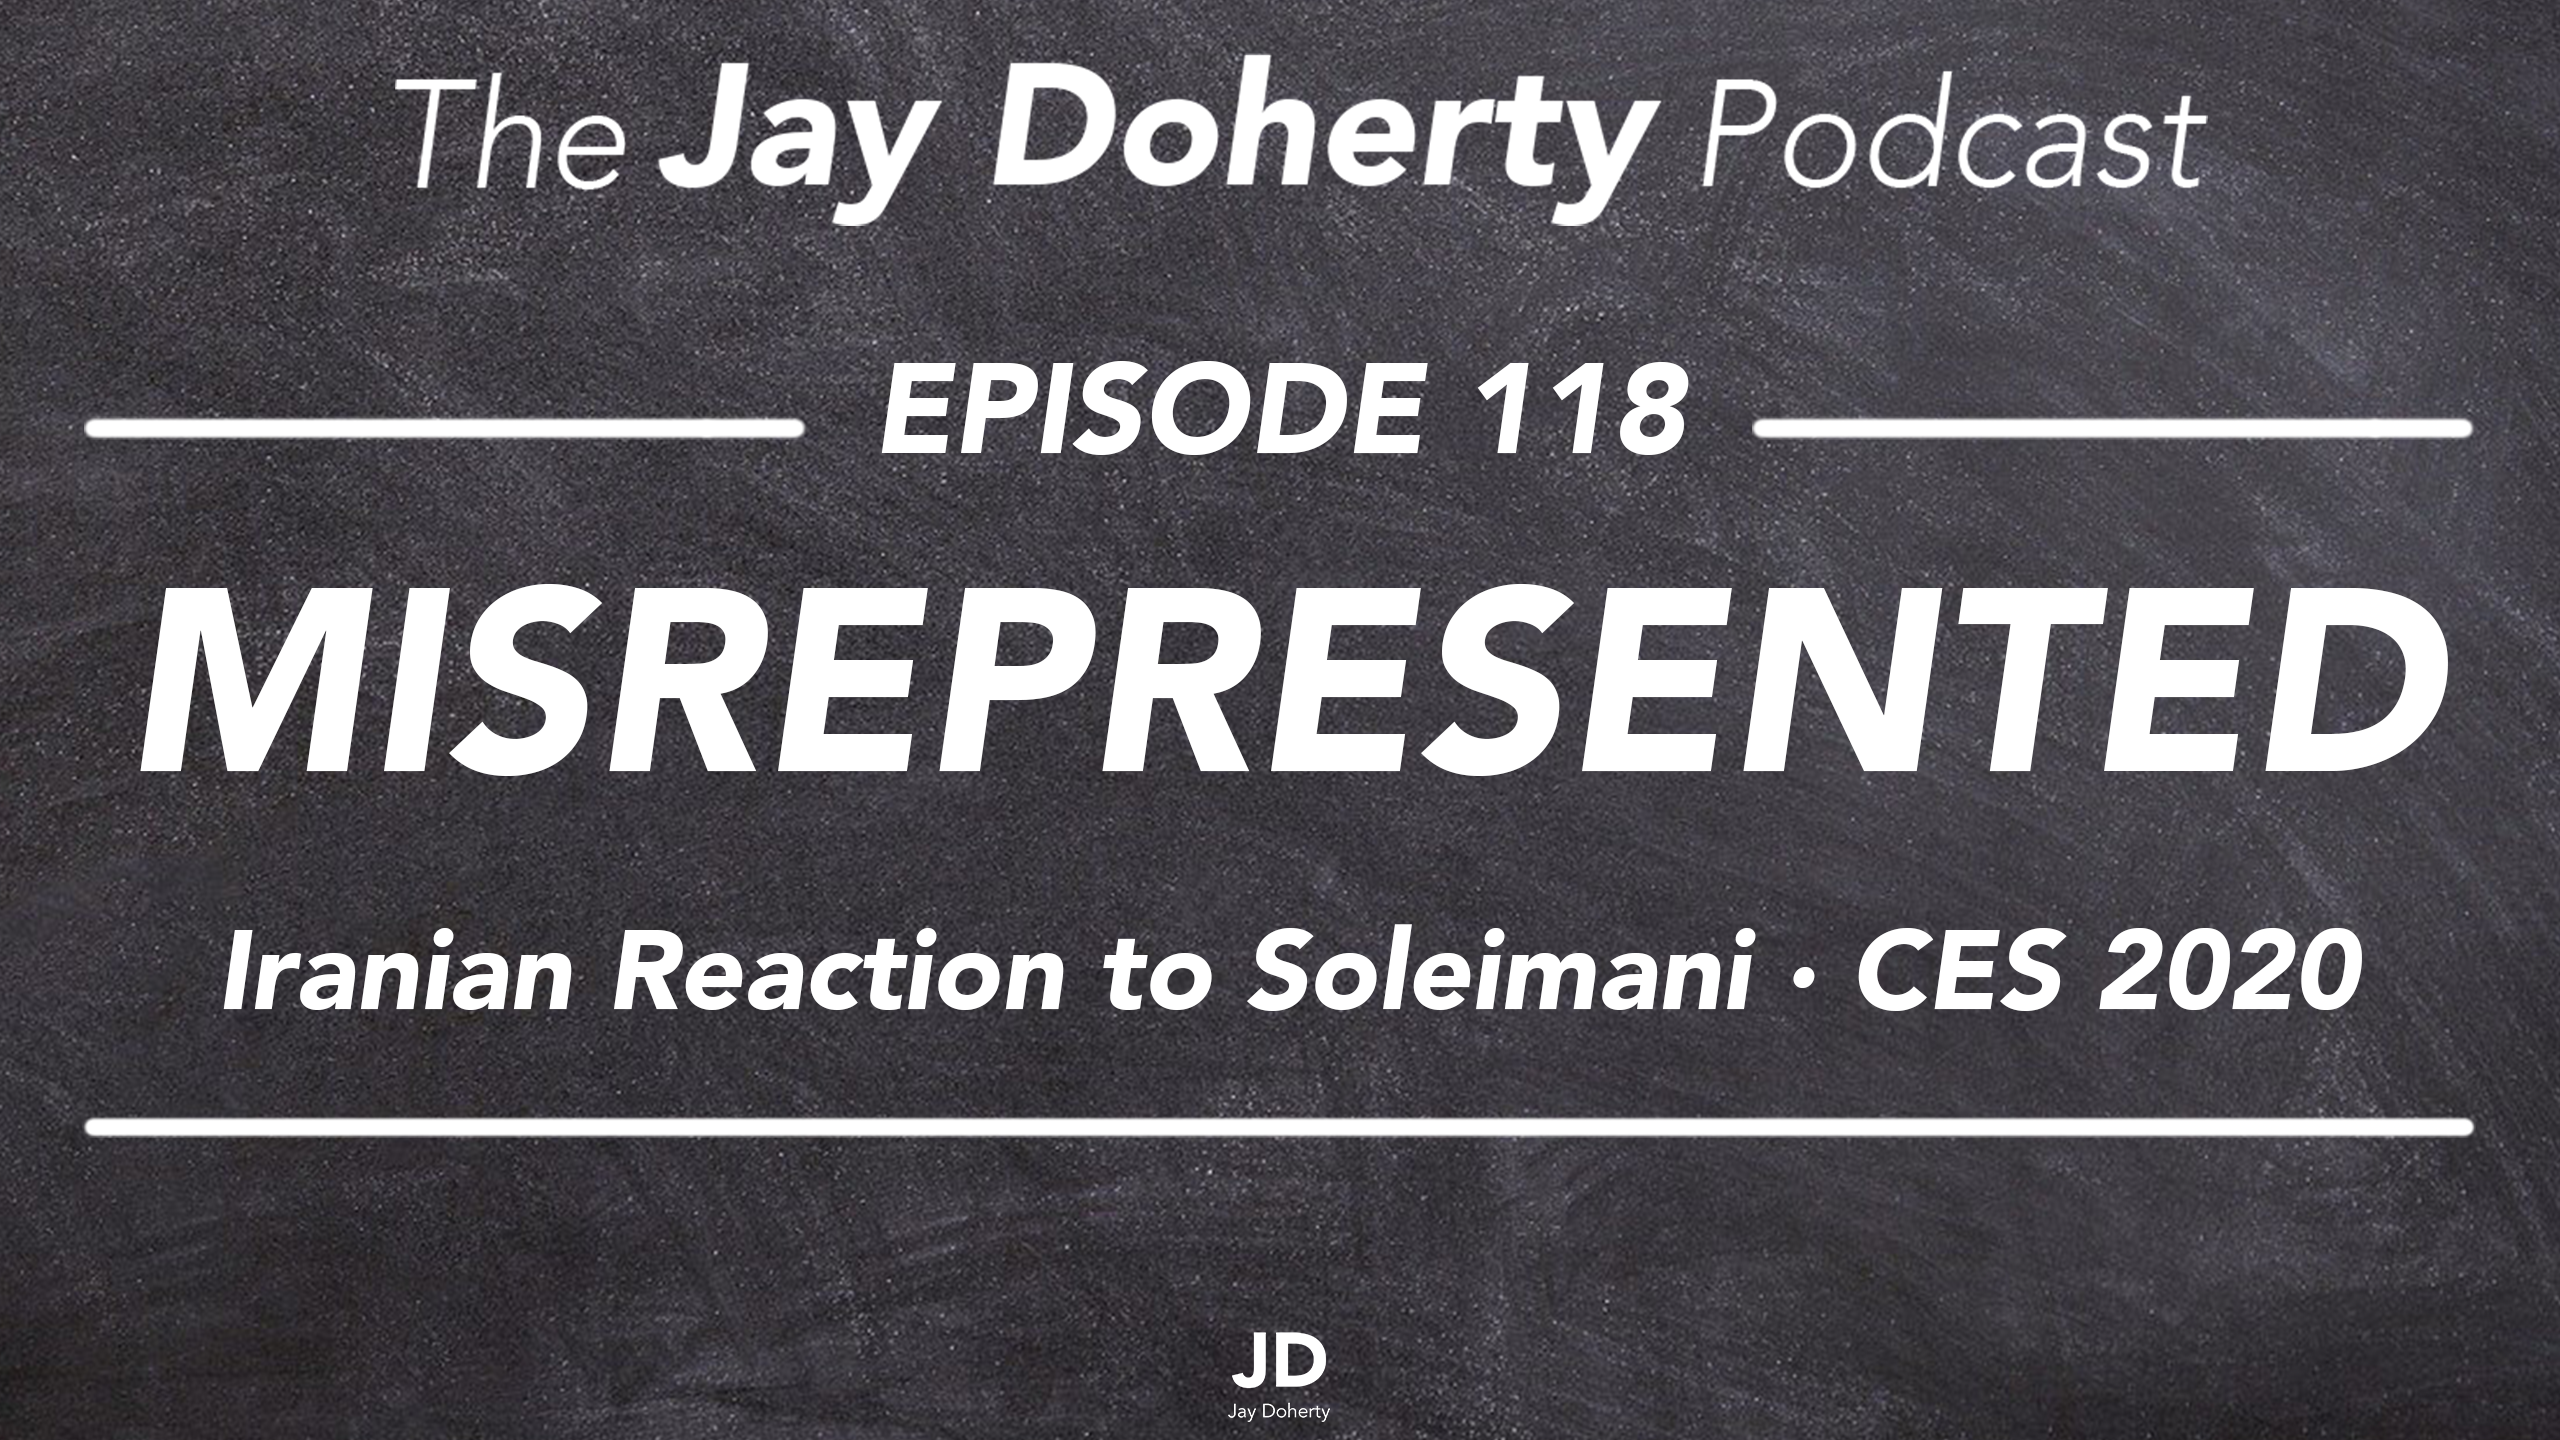 Ep. 118 – Misrepresented | Iranian Reaction to Soleimani Death, CES 2020